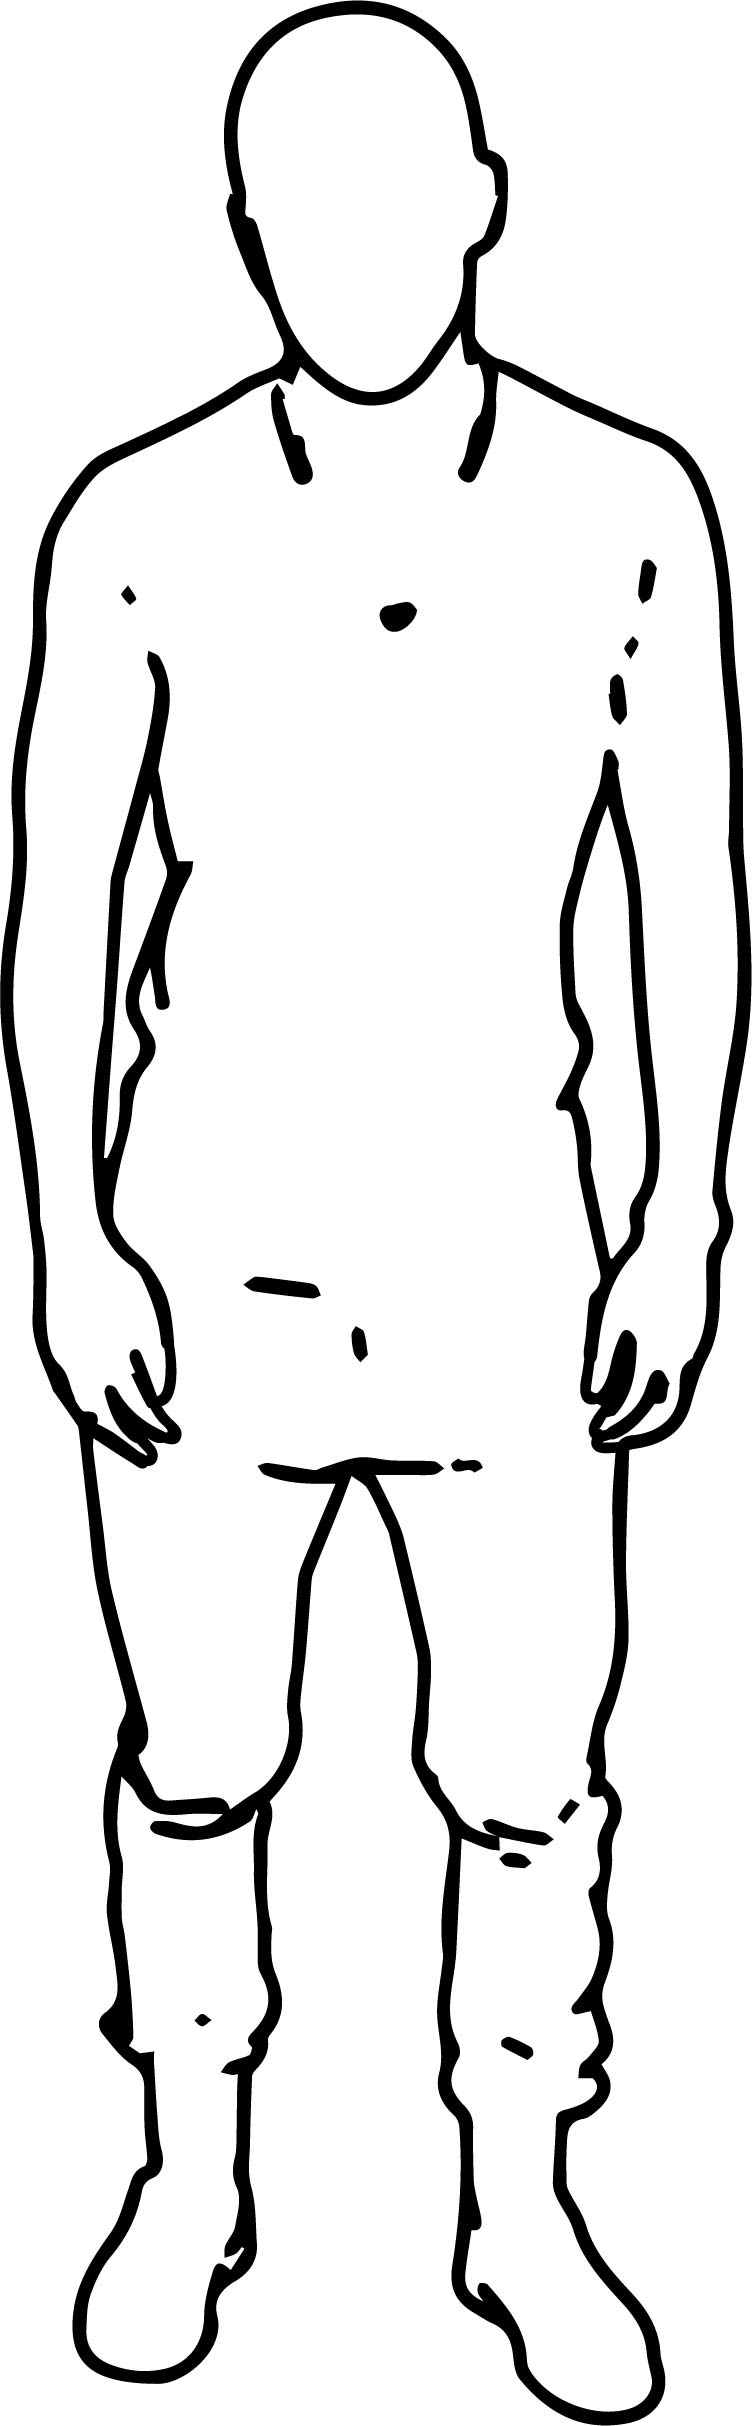 Scan Man Coloring Page